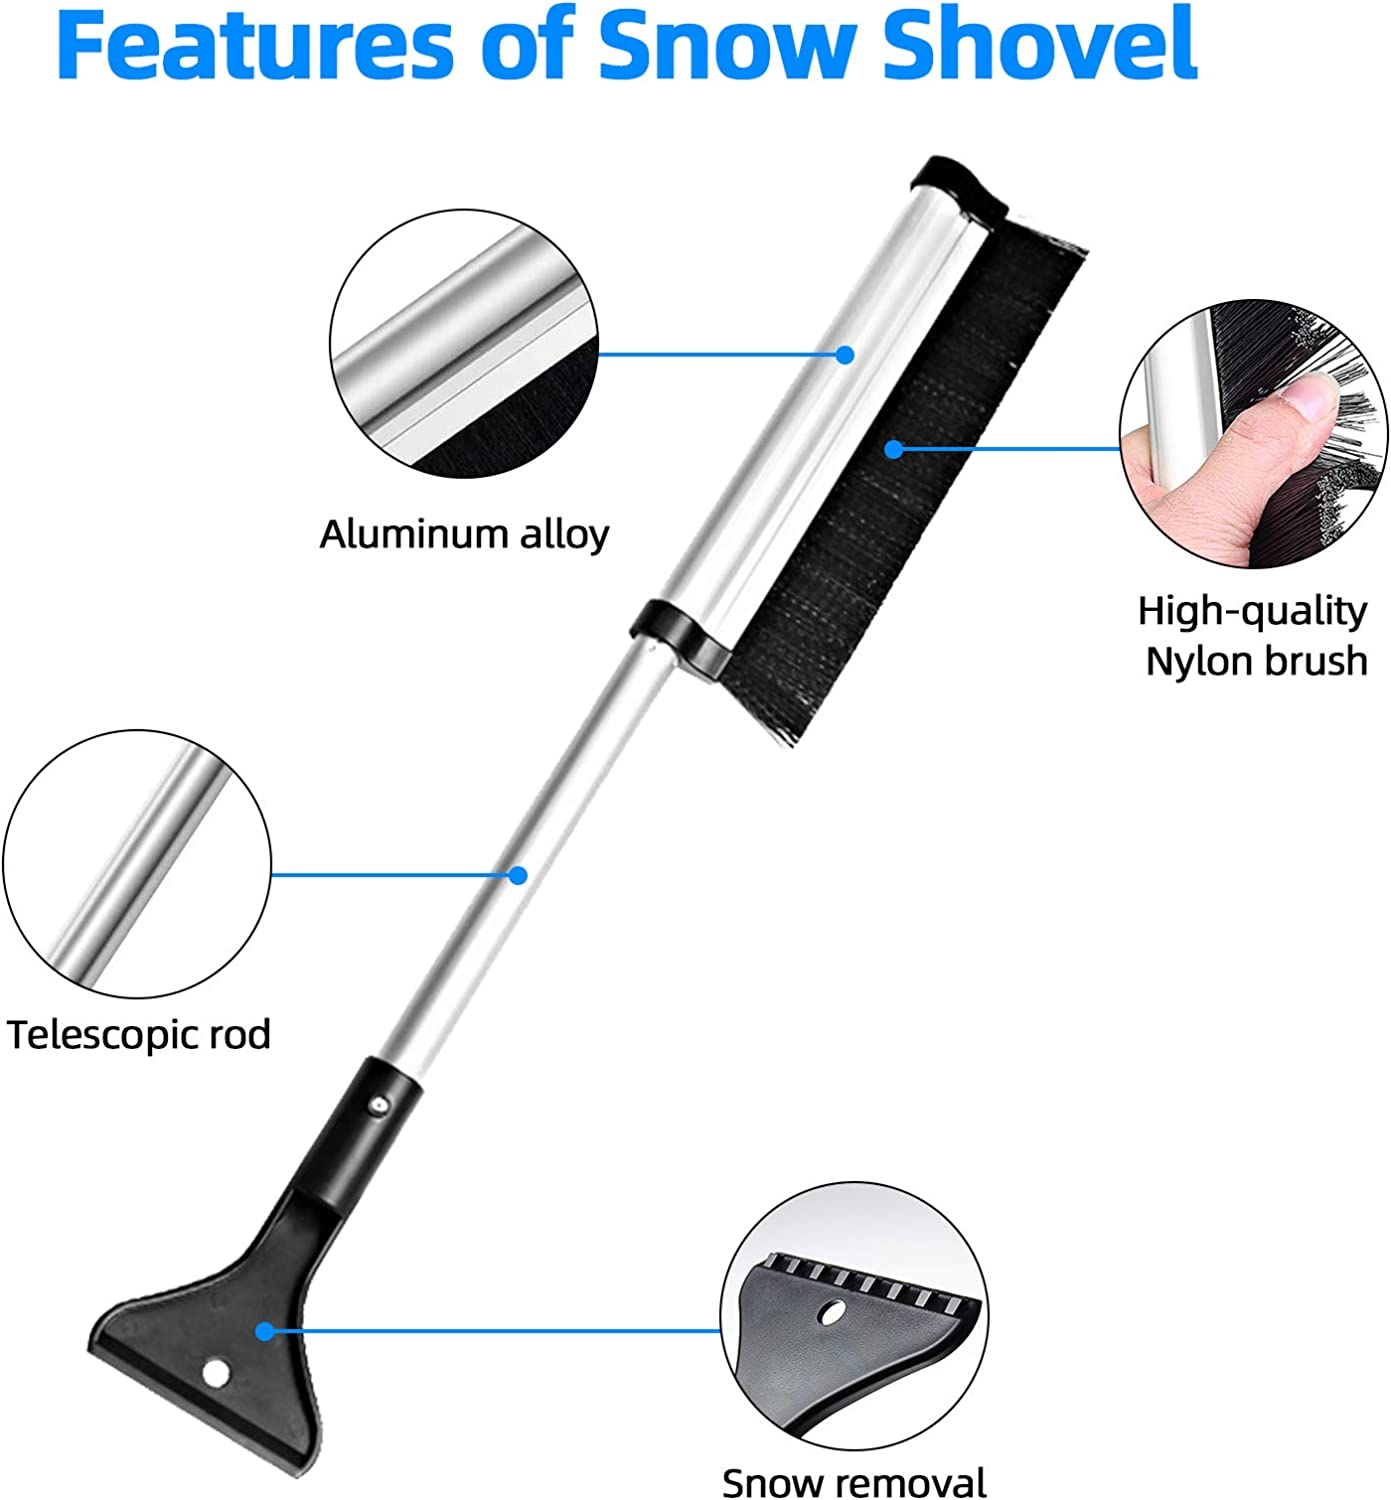 Ice Removal Wiper Protector with Side Mirror Covers,Extra Large fit for Vans,Trucks,Sedan,SUVs,Snow,Ice,Sun,Frost Defense Snow Brush/&Ice Scraper Included VOKUA Car Windshield Snow Cover